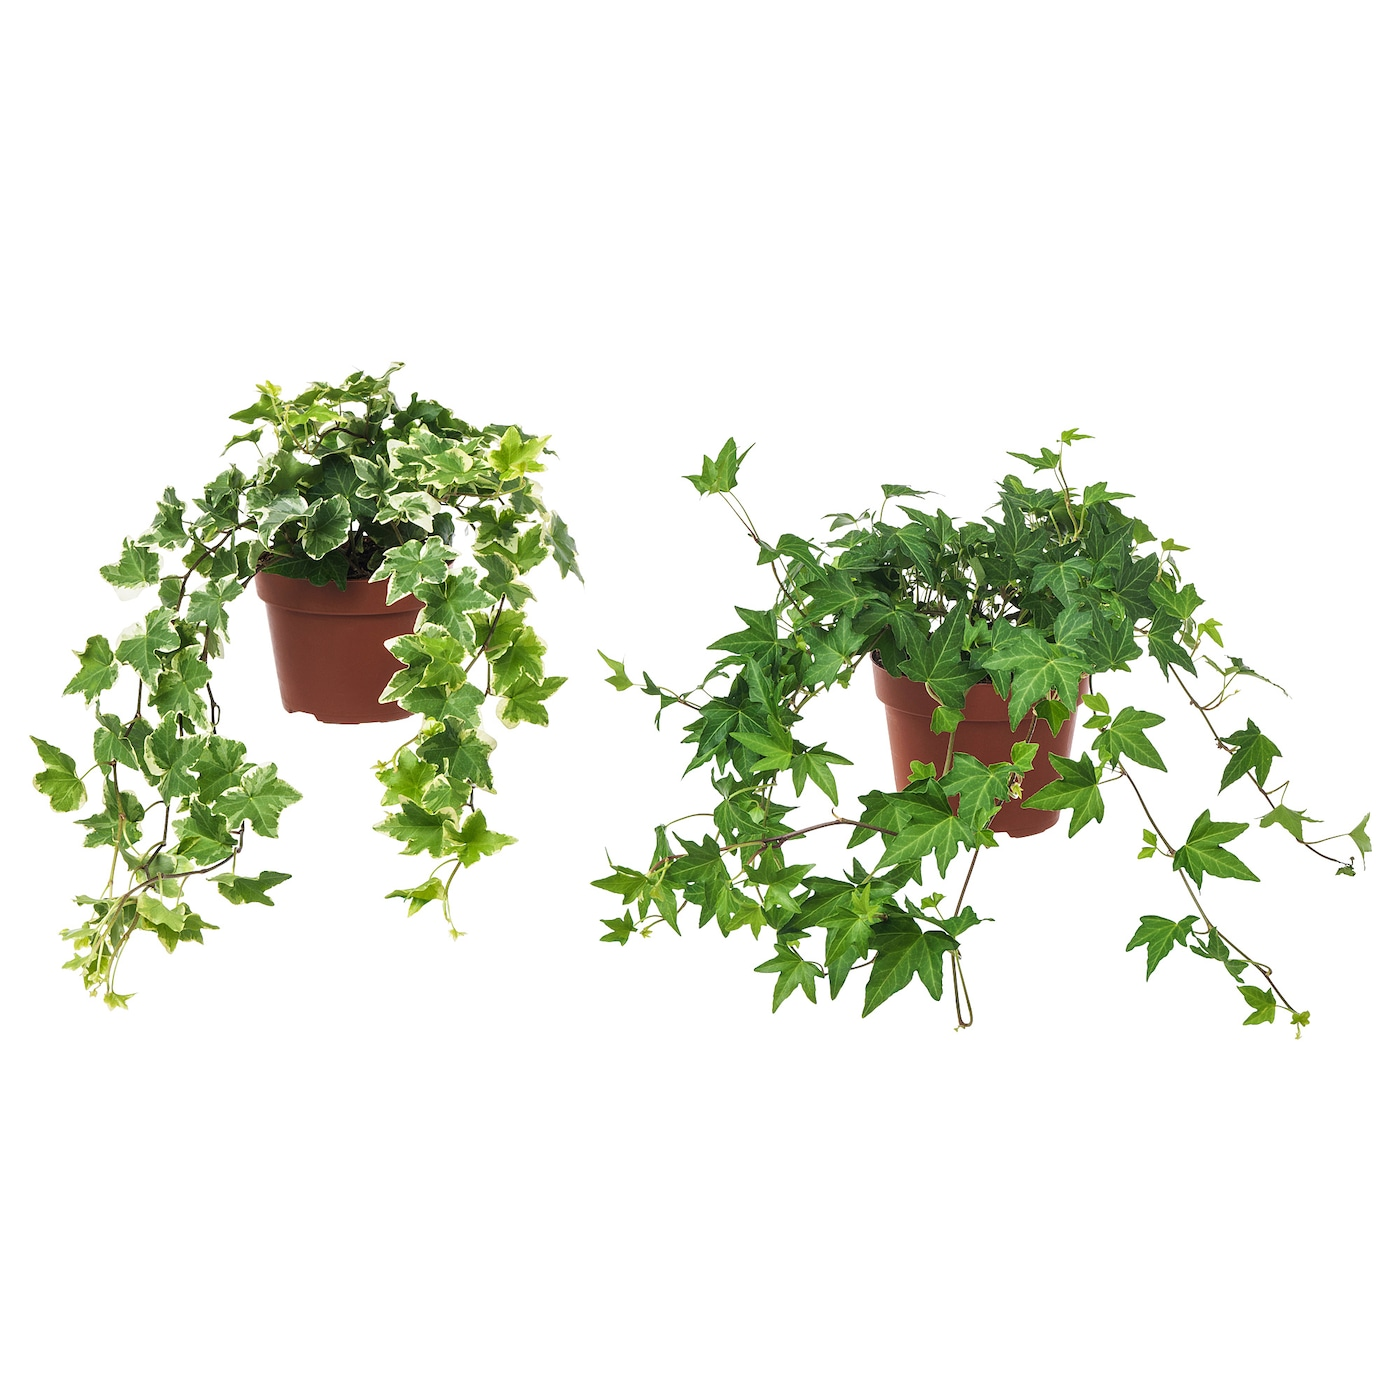 IKEA HEDERA HELIX potted plant